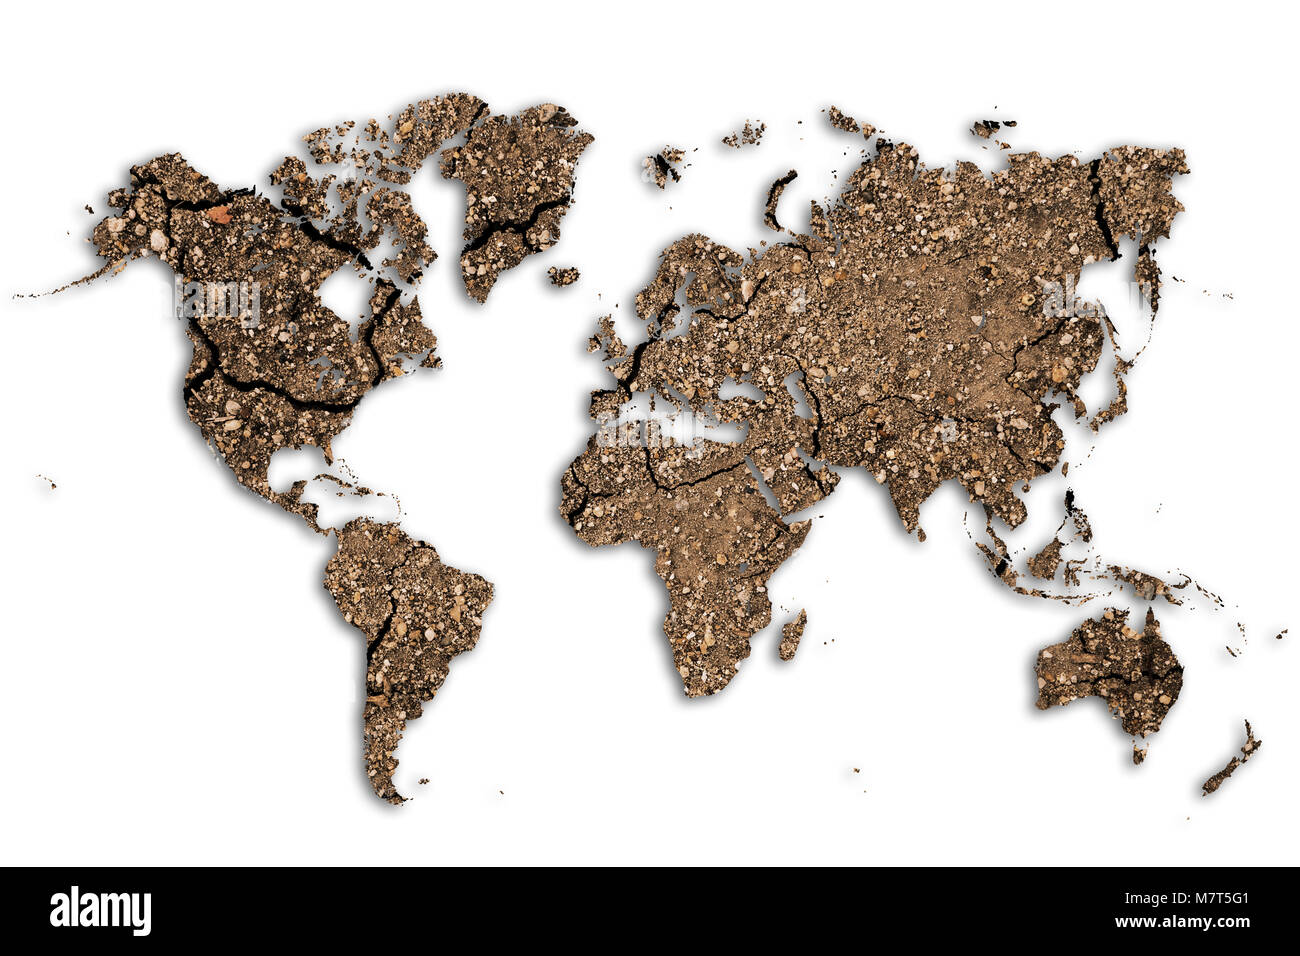 Dry clay texture on world map representing climate change, global warming, starvation, drought and other environment - Stock Image